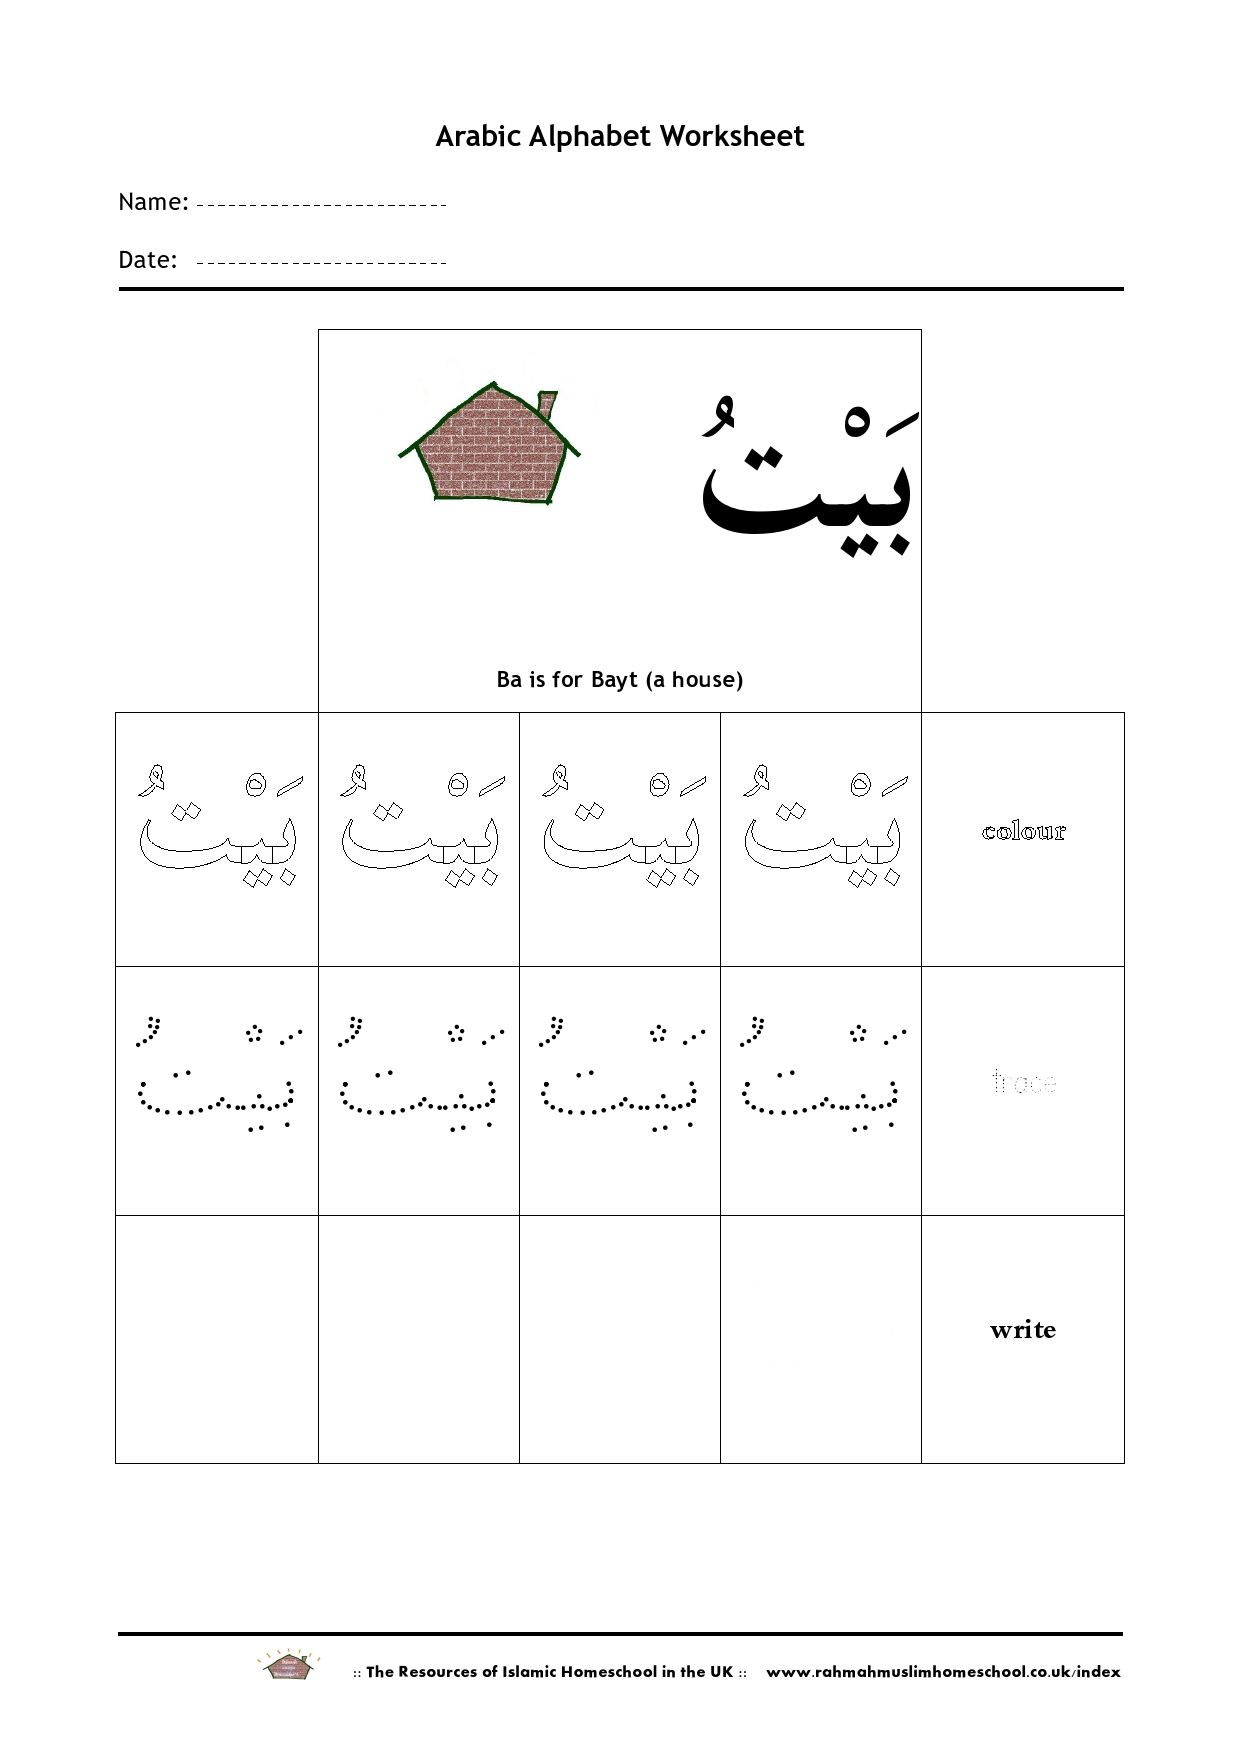 worksheet Alphabet Worksheets Ks2 free arabic alphabet worksheet ba is for bayt a house house